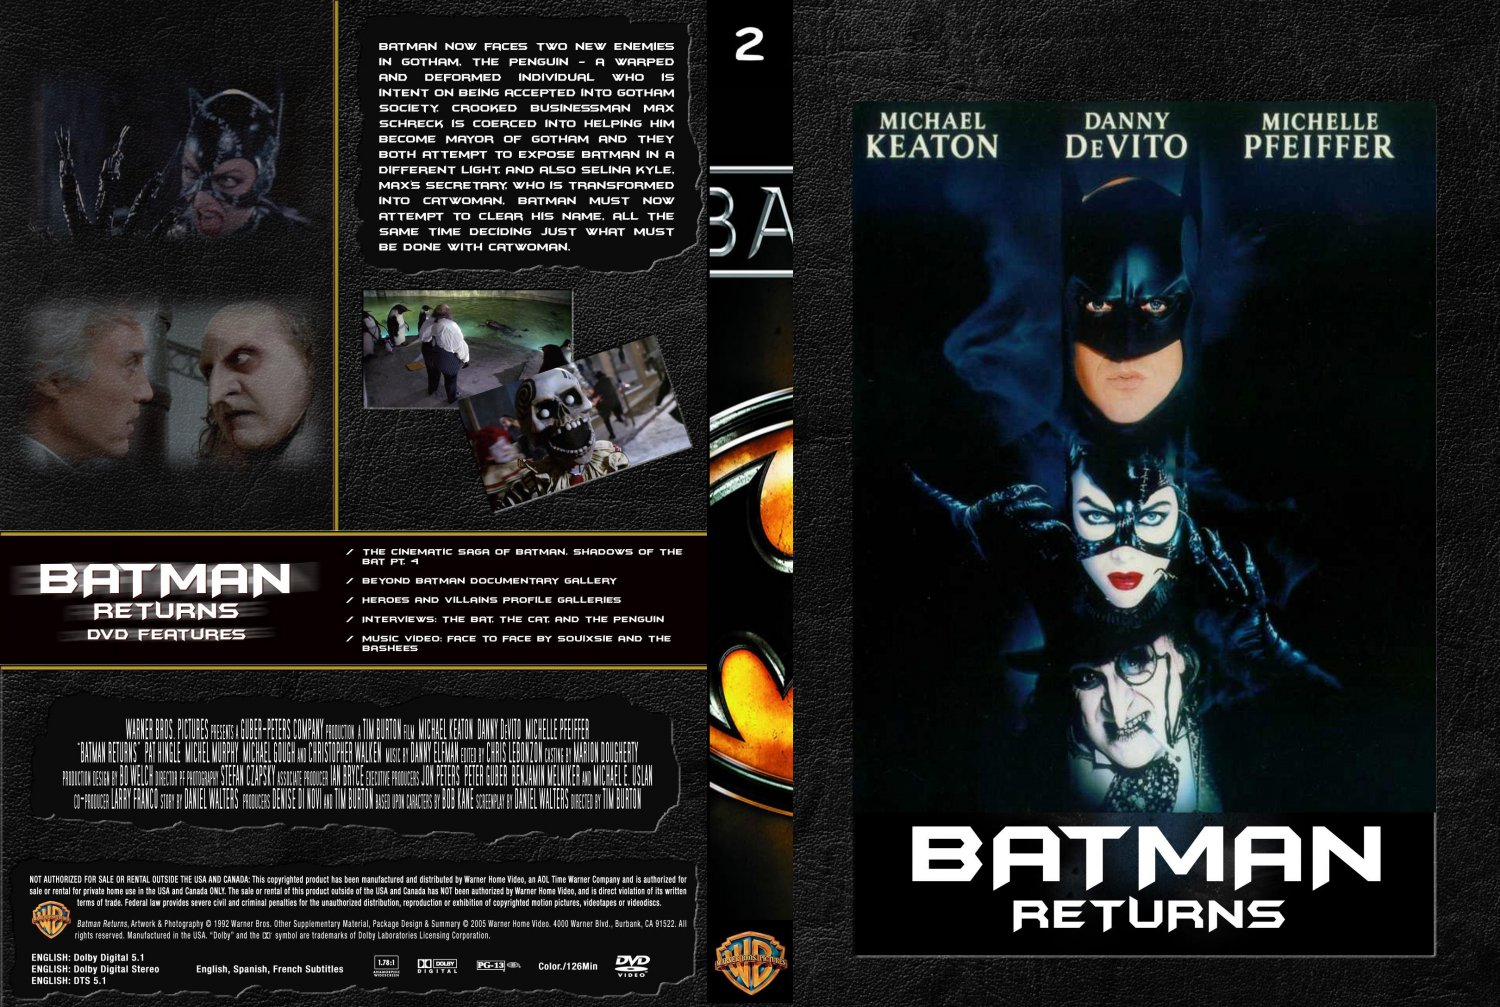 Batman Movie Cover Pictures to Pin on Pinterest - PinsDaddy